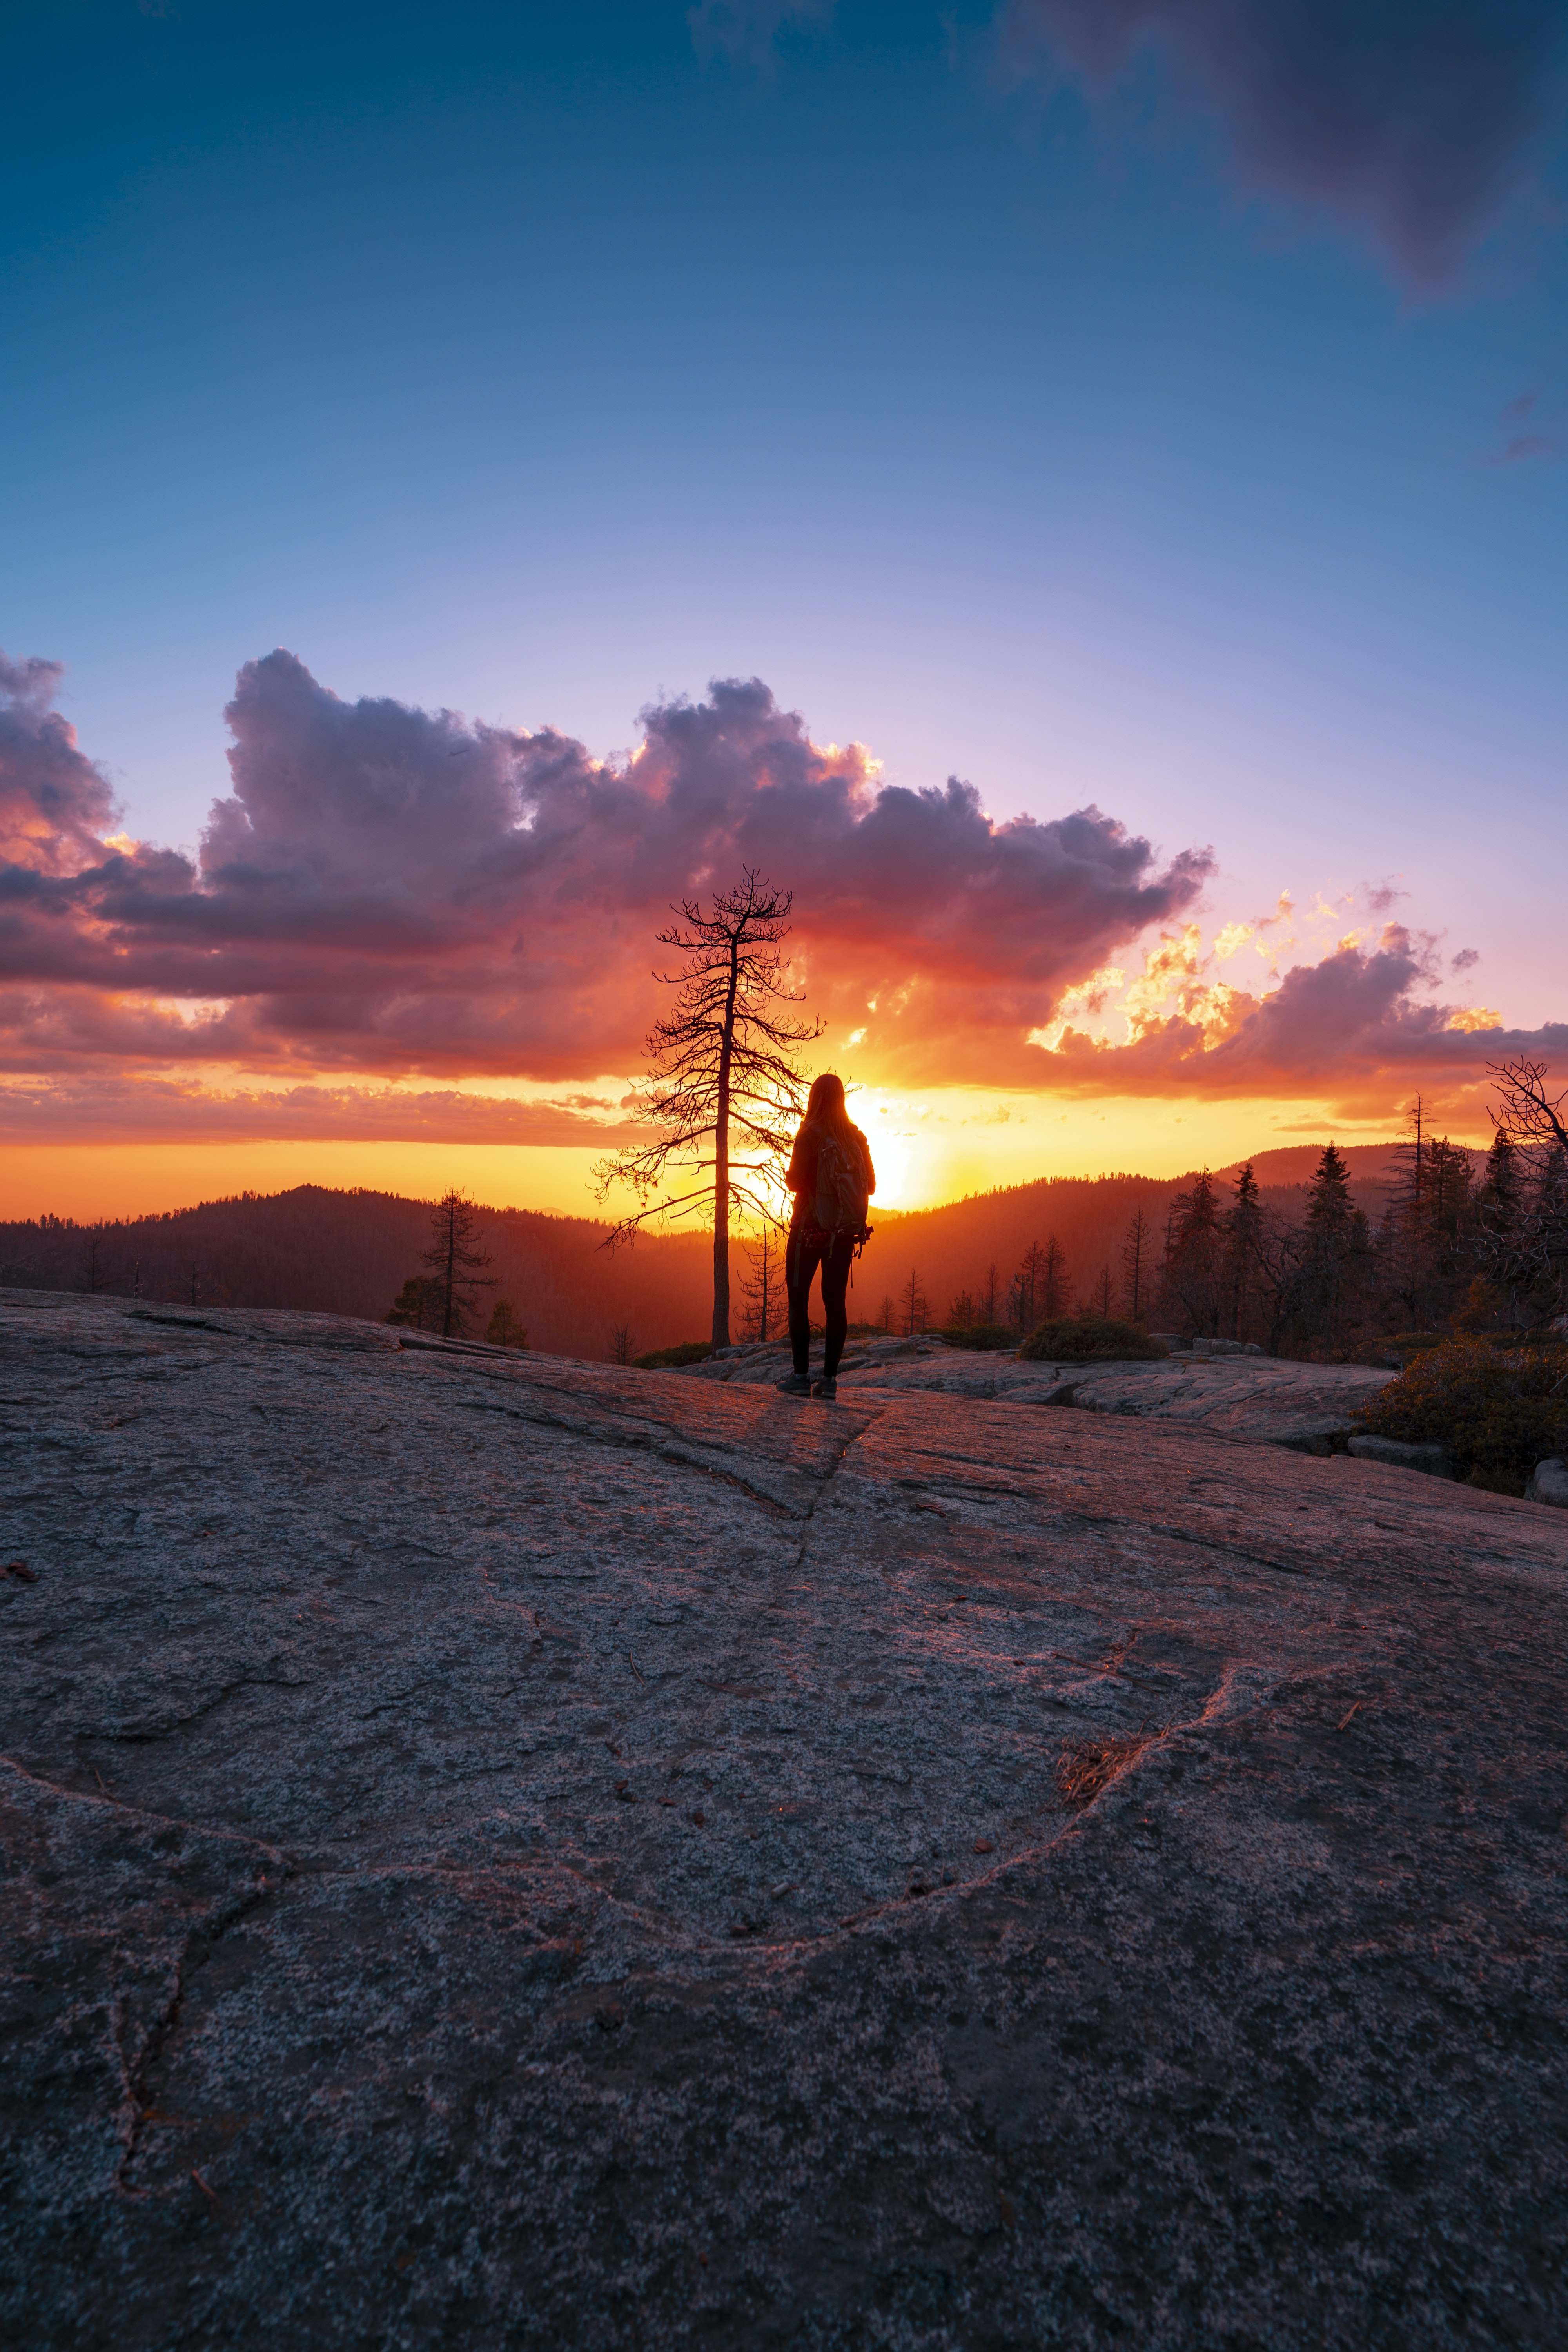 silhouette photo of woman standing on gray rock formation